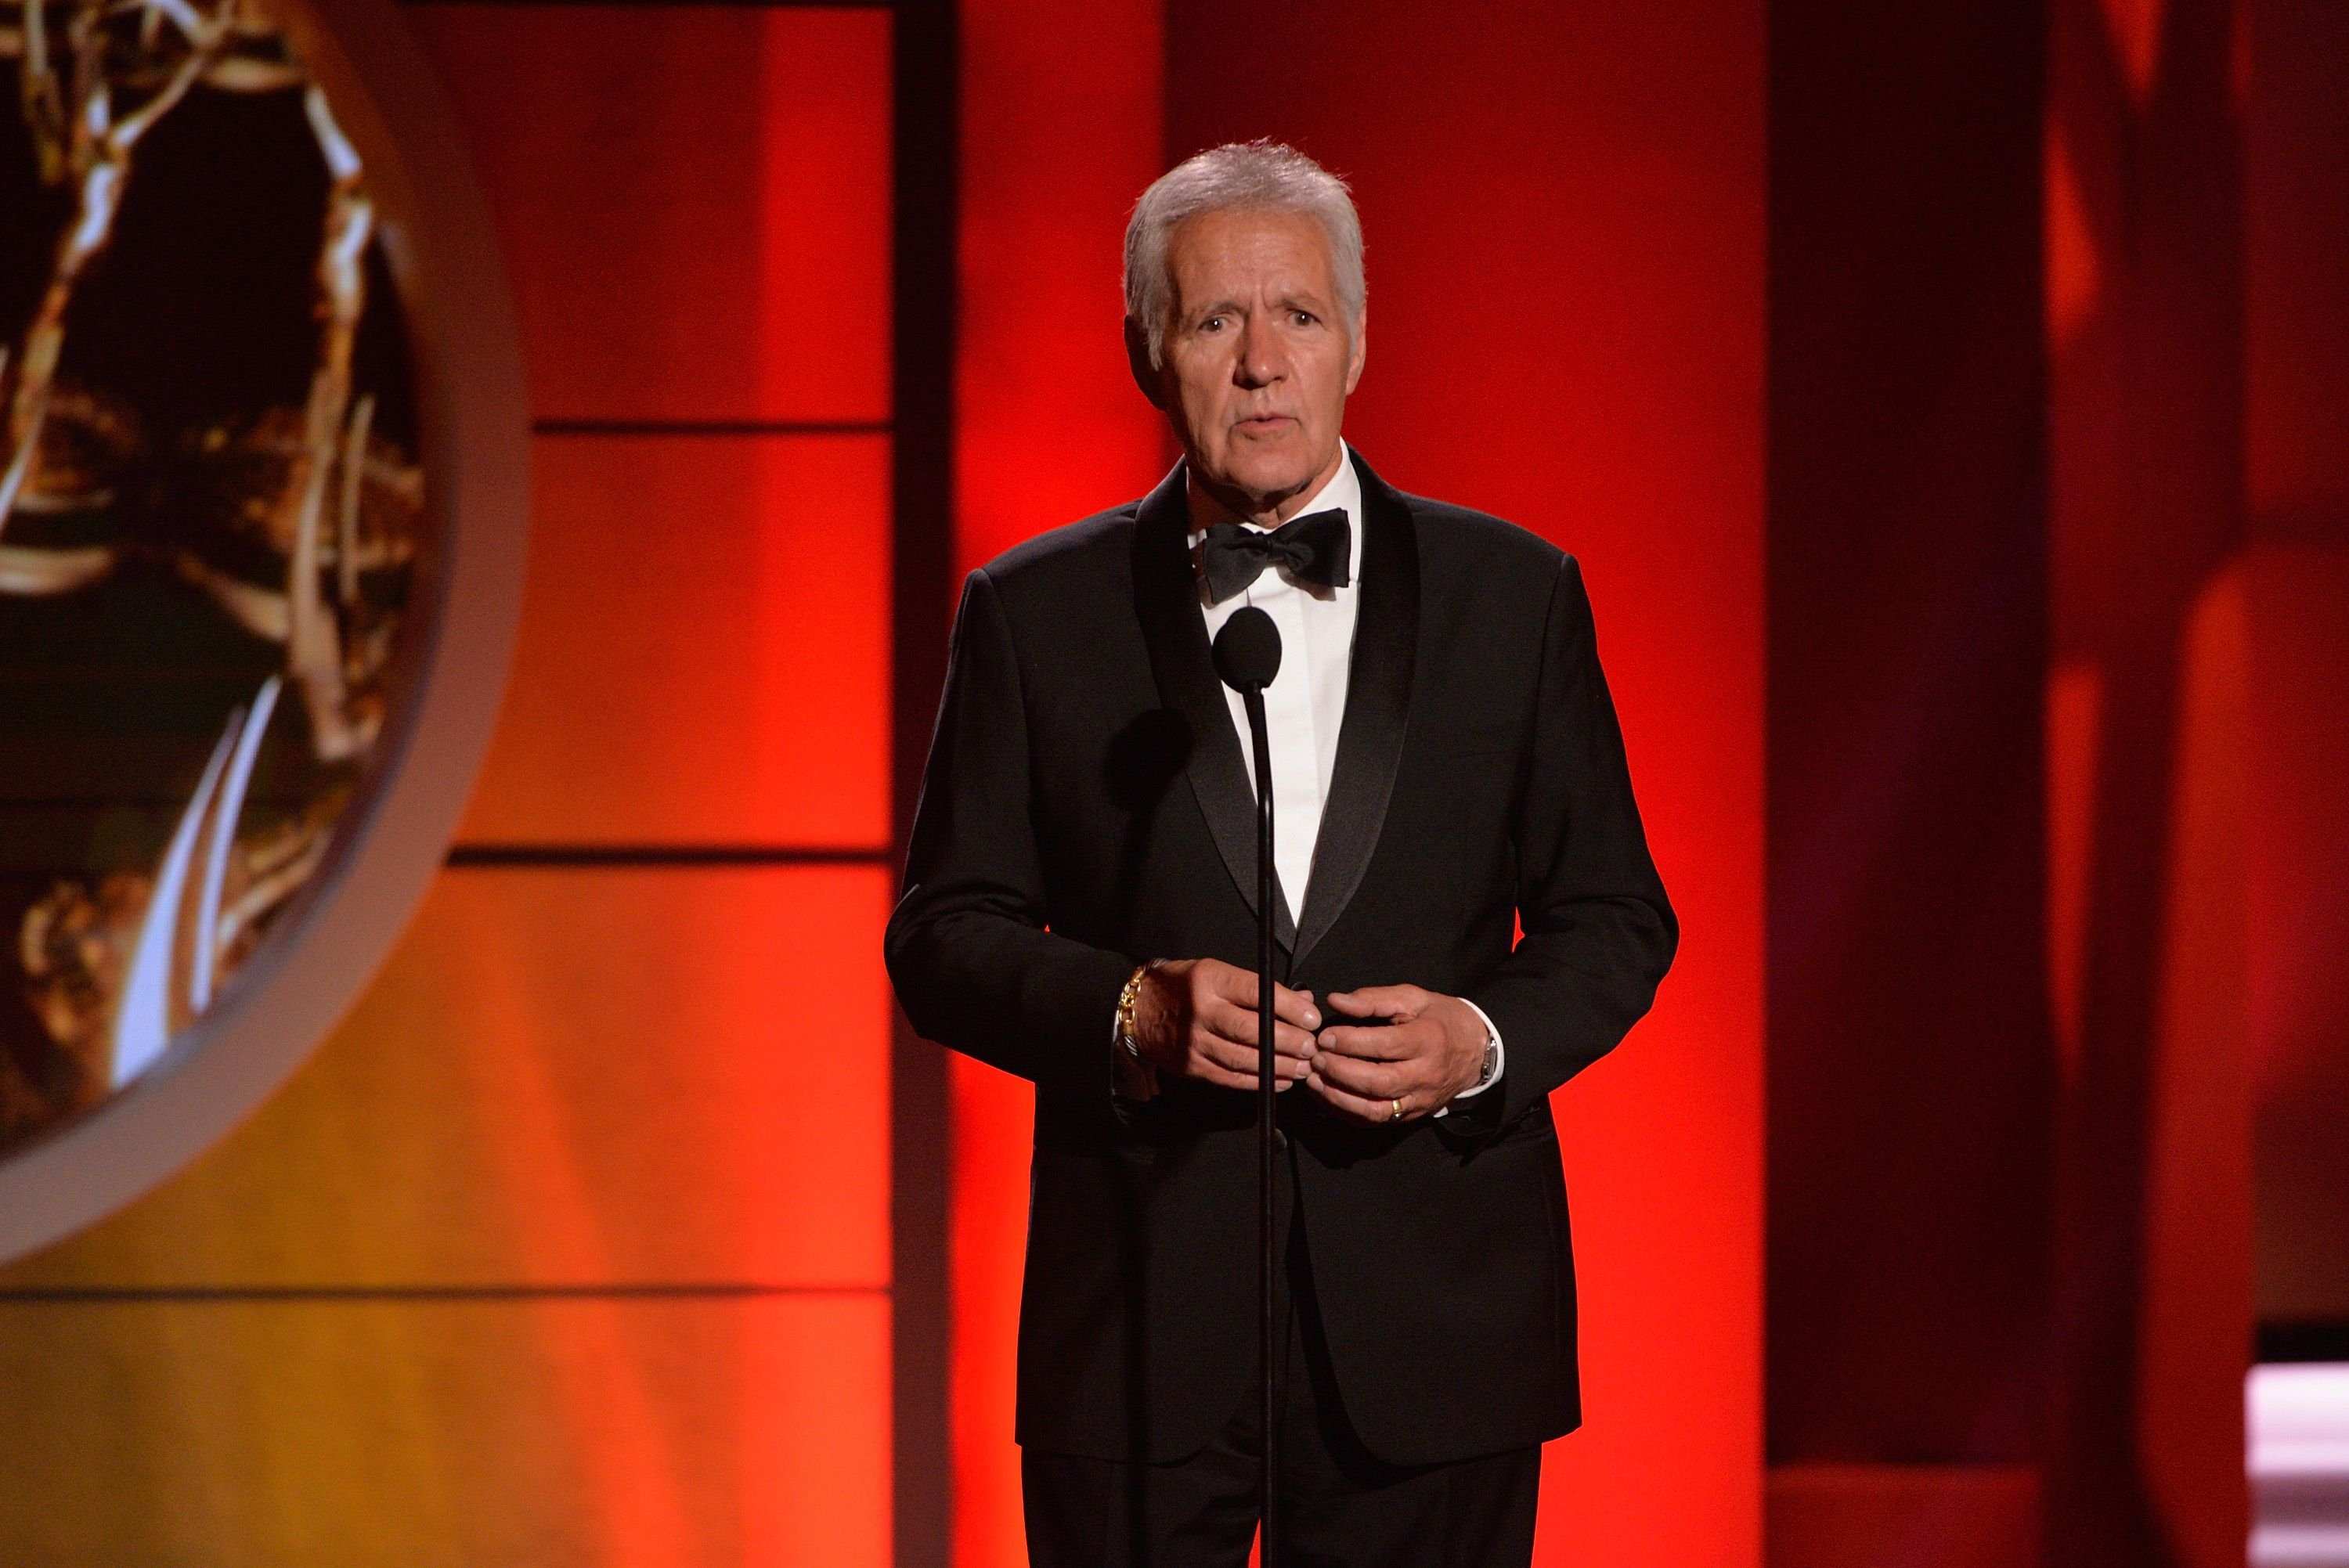 Alex Trebek speaks at the 44th annual Daytime Emmy Awards at Pasadena Civic Auditorium on April 30, 2017   Photo: Getty Images